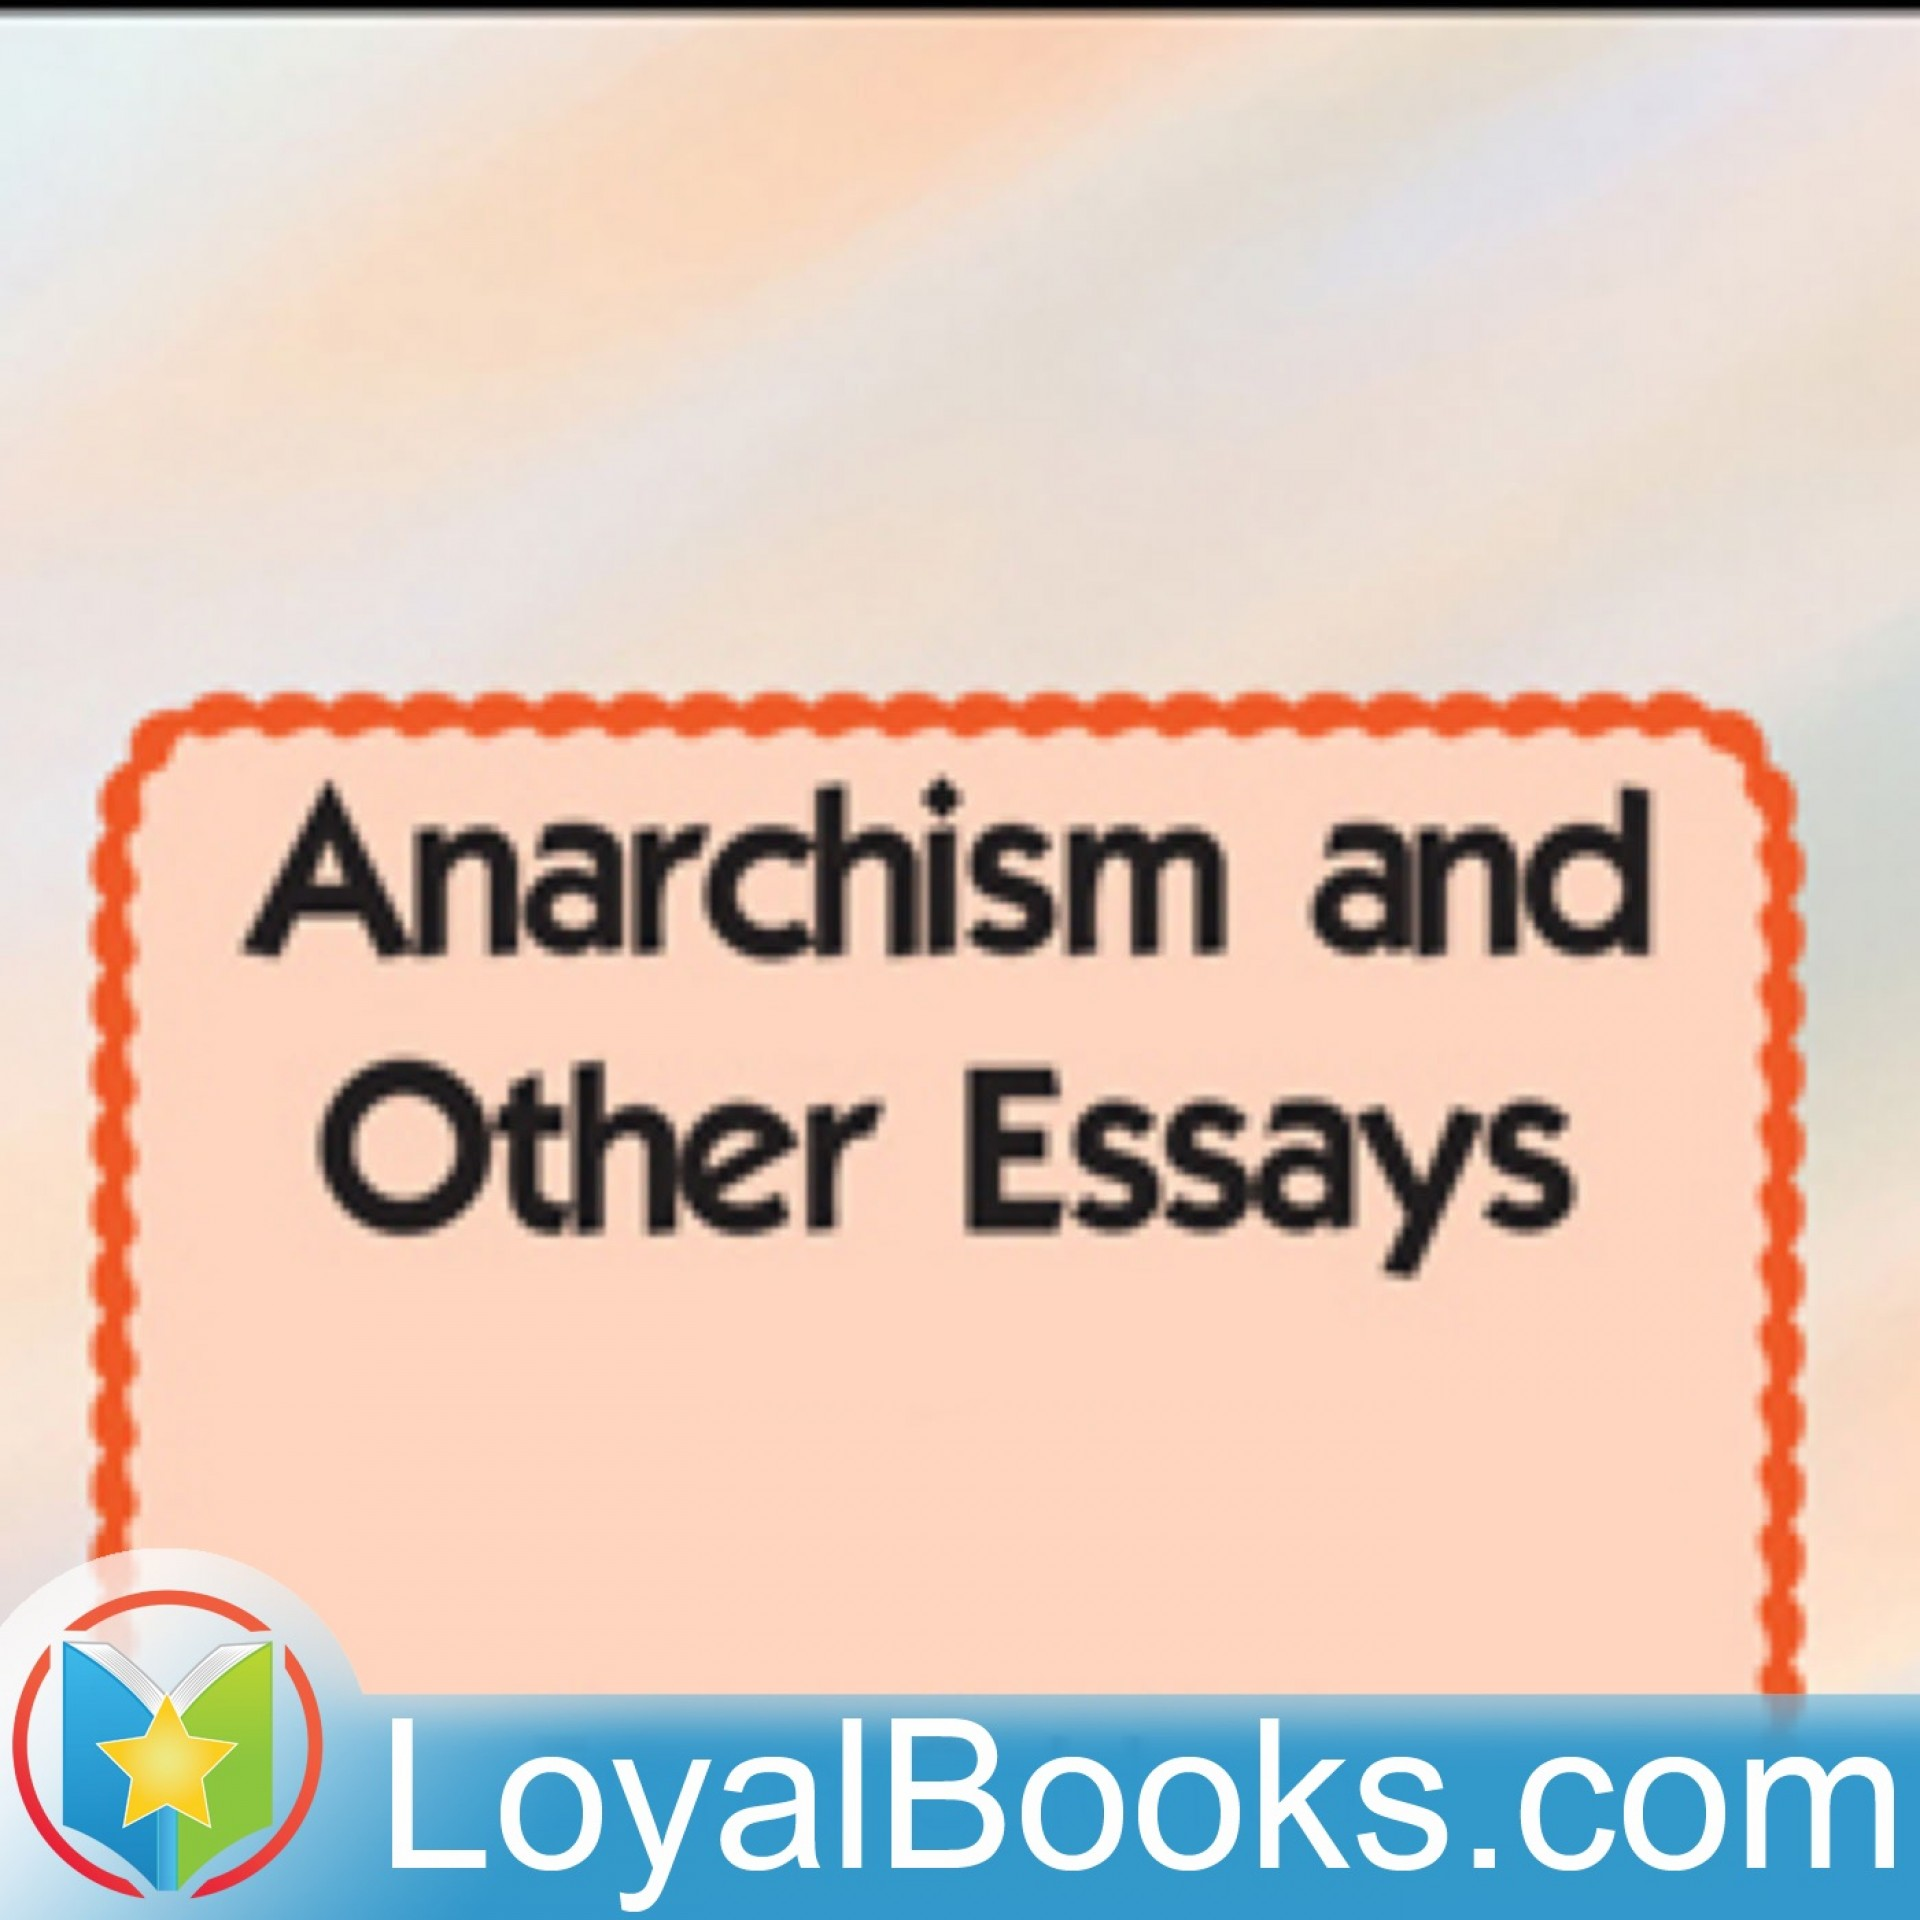 013 Anarchism And Other Essays Essay Example By Emma Incredible Goldman Summary Mla Citation 1920